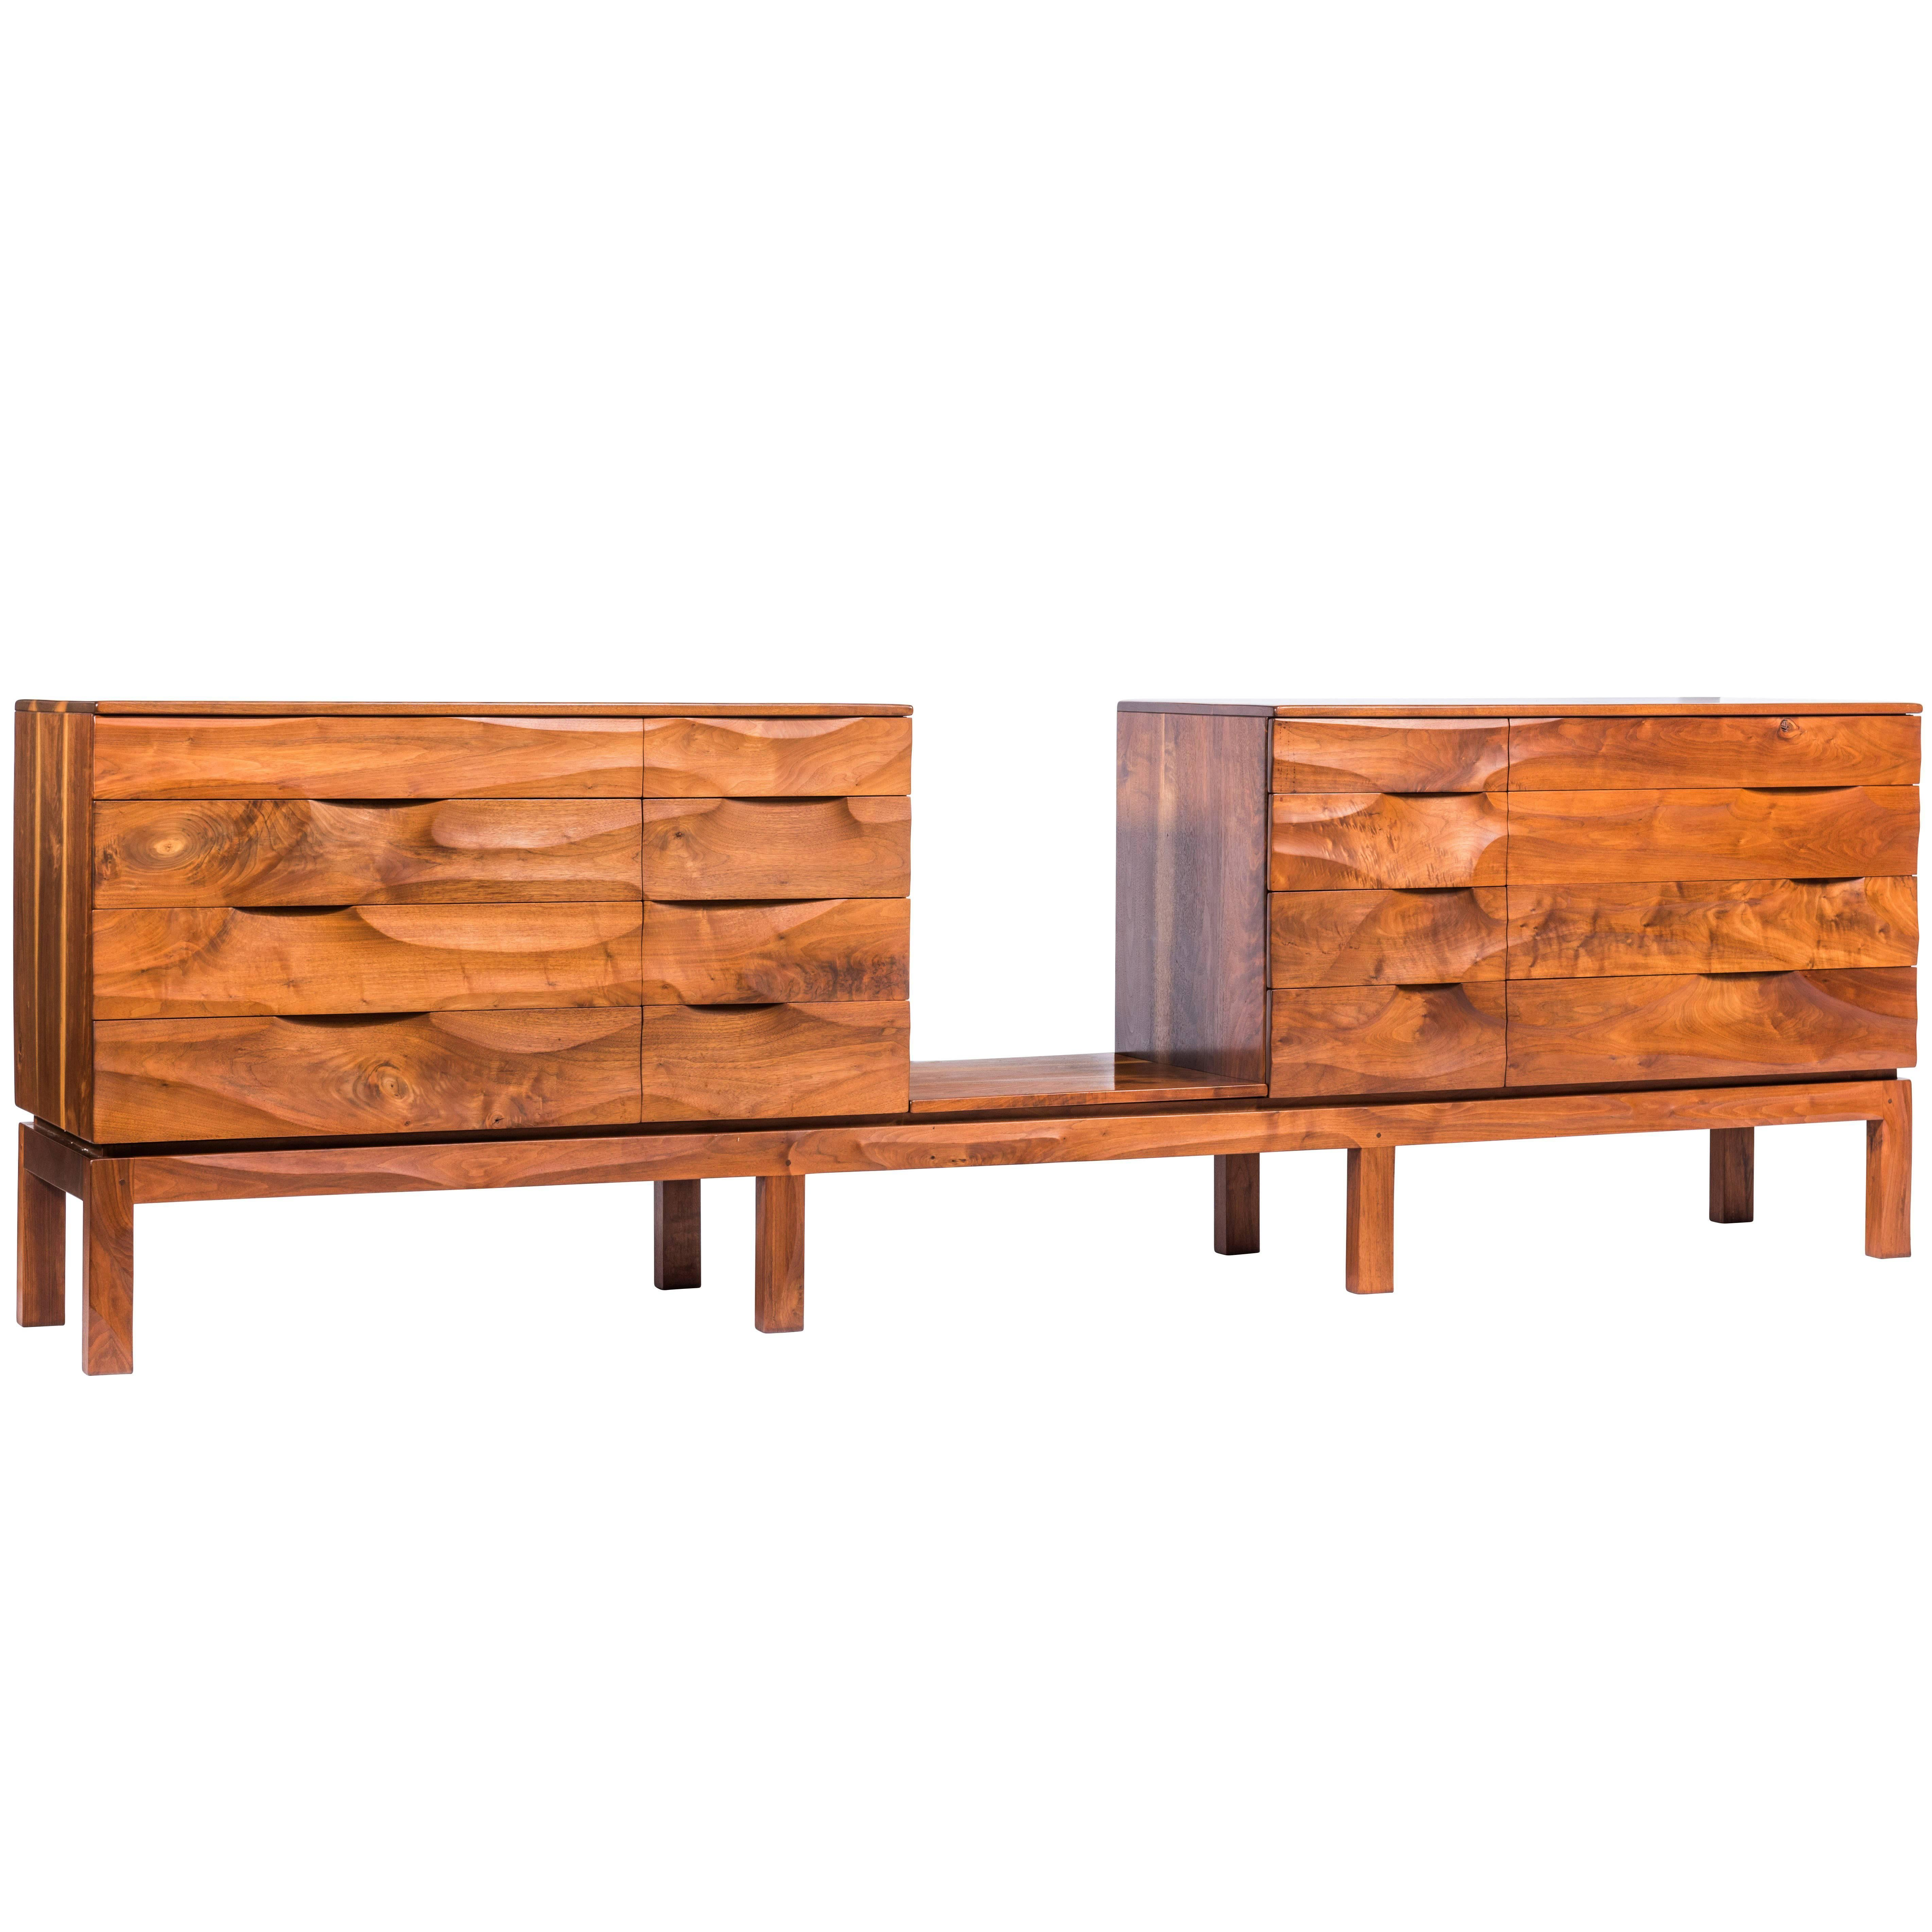 Robert Whitley Furniture: Tables, Storage Cabinets & More - 11 For ...